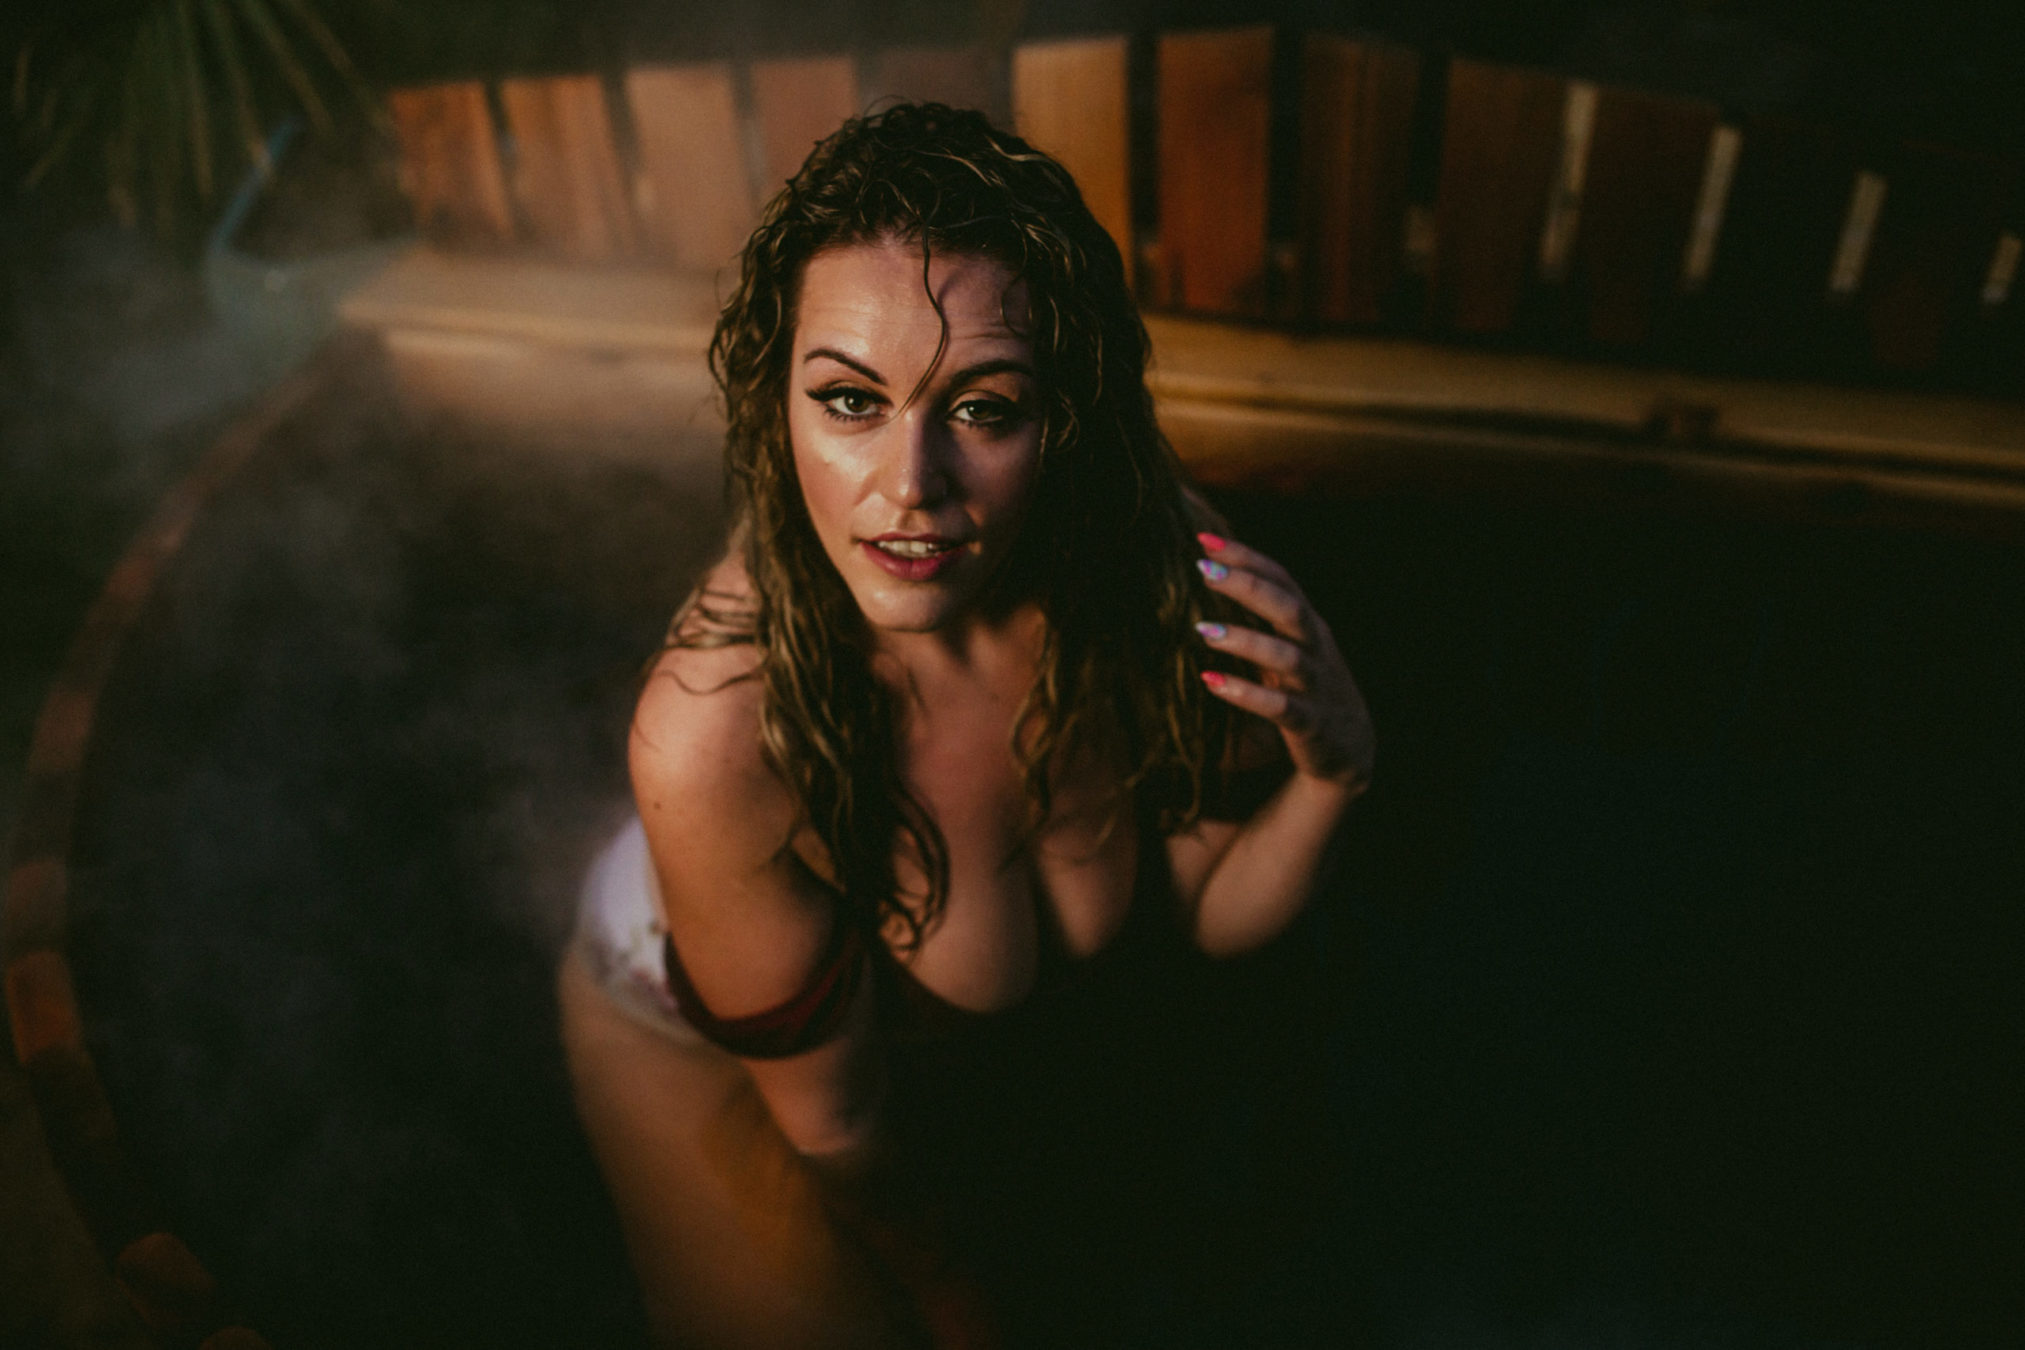 HOT TUB BOUDOIR SESSION